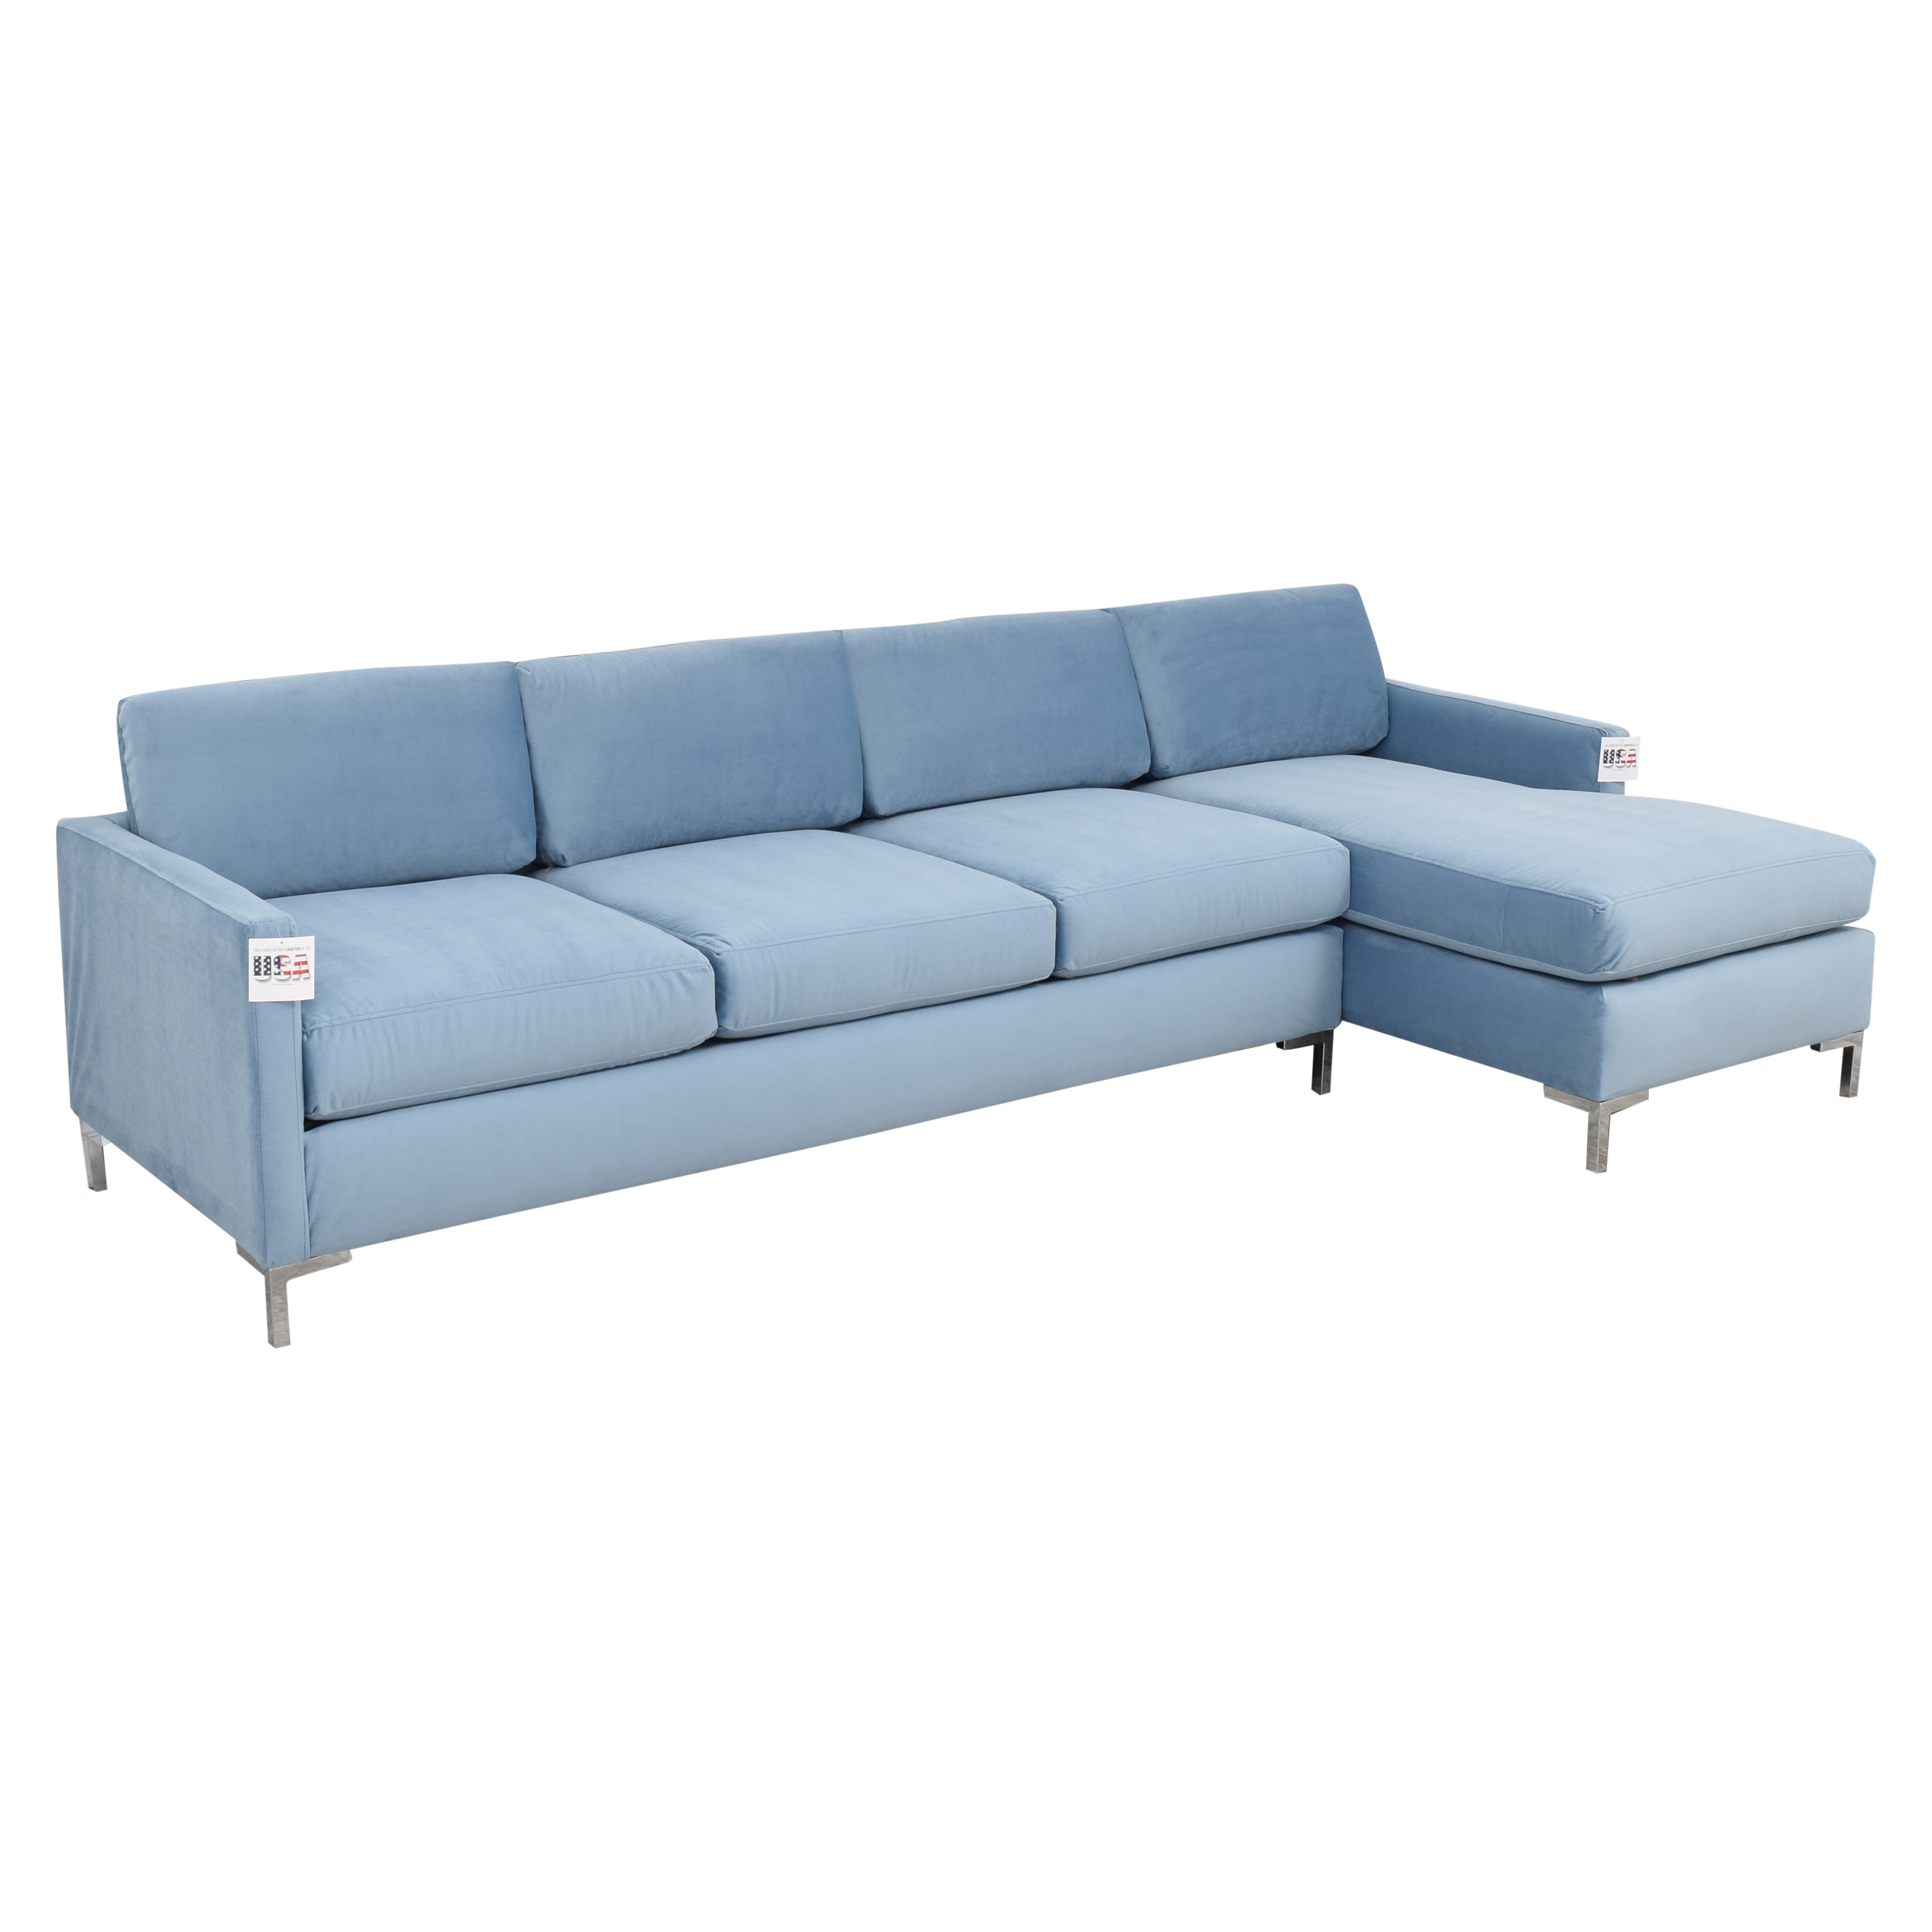 shop The Inside Modern Sectional The Inside